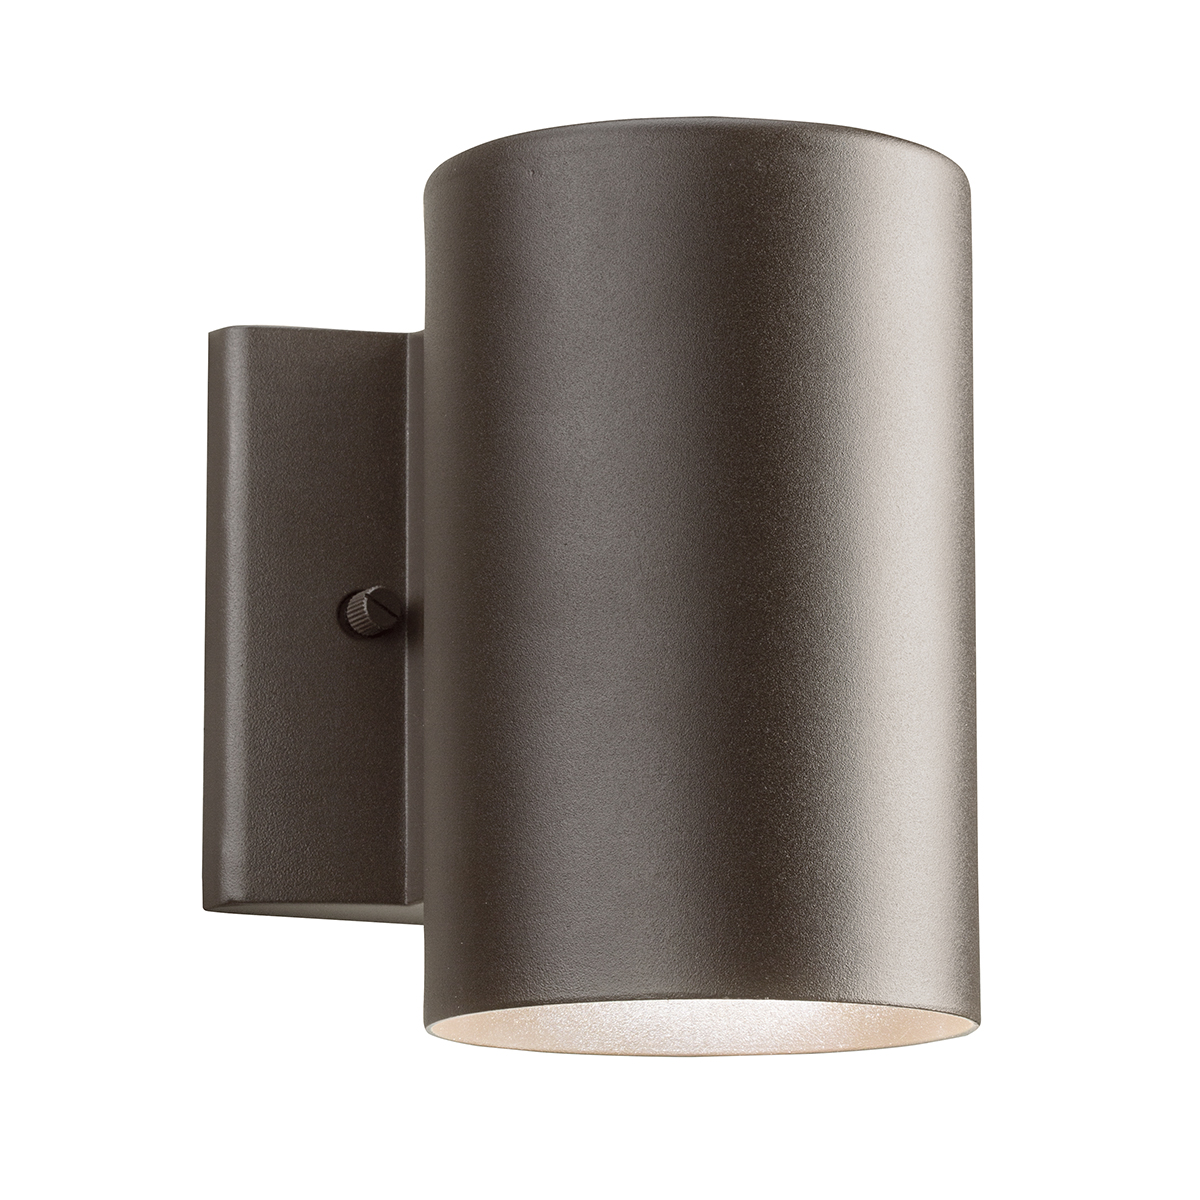 Outdoor Wall Sconce Led Light : Kichler Lighting (11250AZT30) 1-Light Outdoor LED Wall Sconce Sconce in Textured Architectural ...